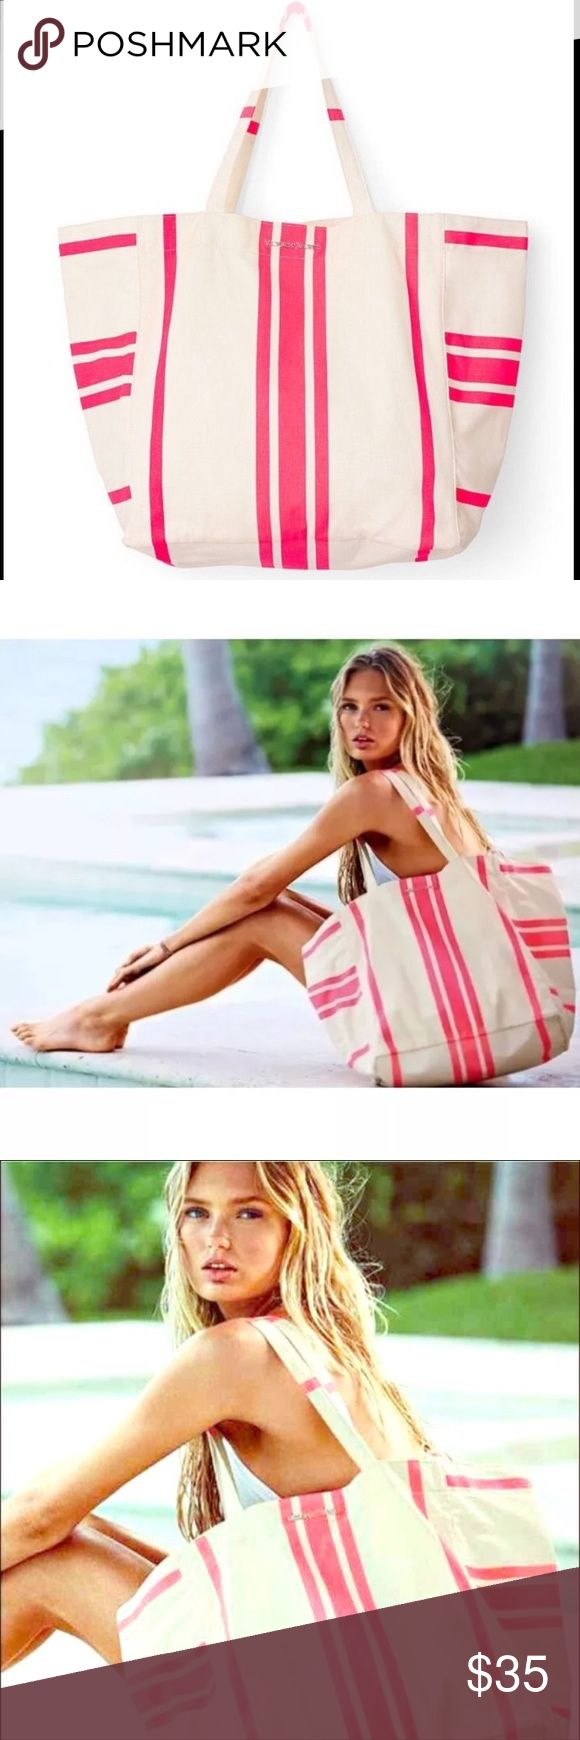 """NEW~ Victoria's Secret Striped Canvas Bag Tote VICTORIA'S SECRET Sun & Fun Canvas Tote  Condition: New with tags  Product Details:  Limited Edition Measures 24"""" L x 9.5"""" W x 14"""" H Canvas Material Large & Spacious Great as an everyday tote or beach bag Victoria's Secret Bags Totes"""